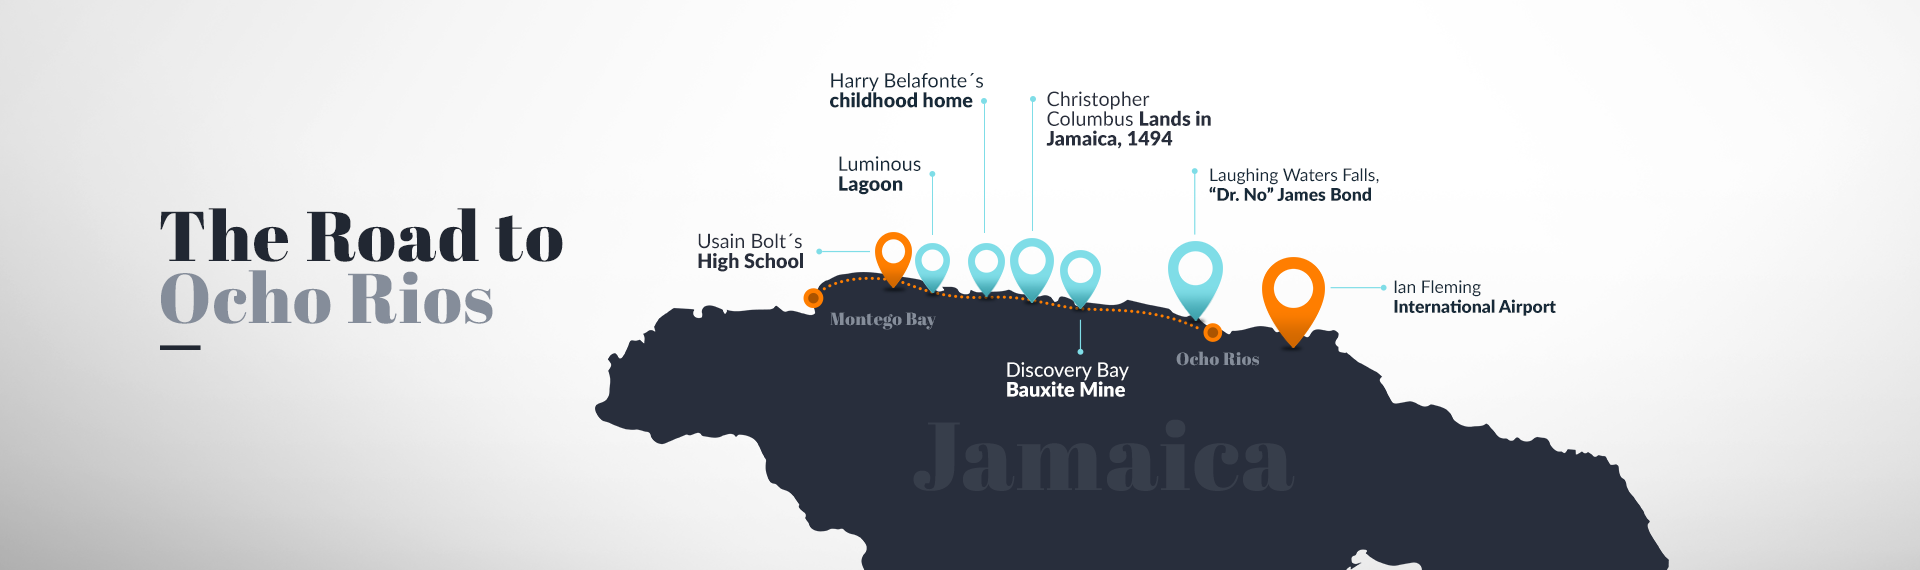 Map of Jamaica with route from Montego Bay to Ocho Rios